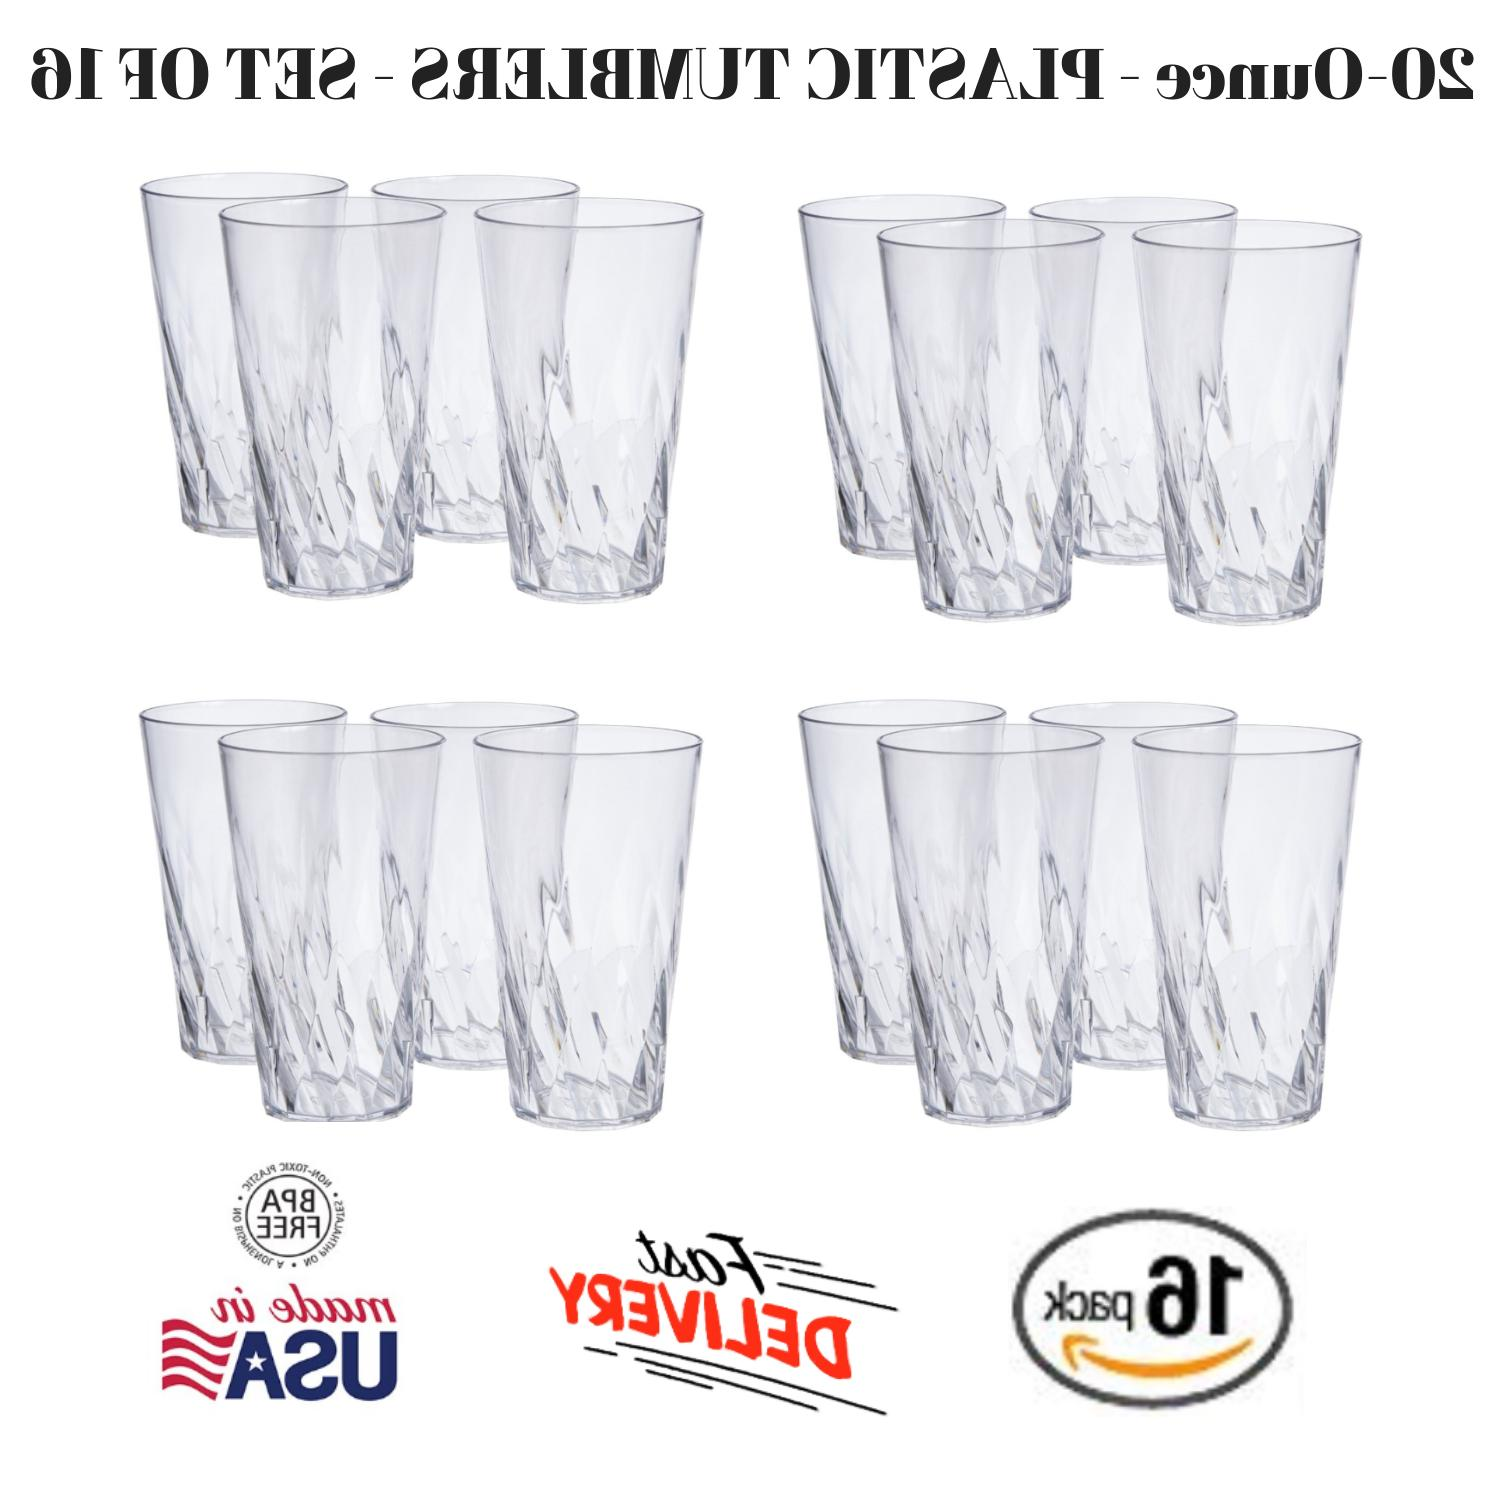 Set Of 16 New Clear Plastic Beverage Tumblers 20 Oz Dishwash